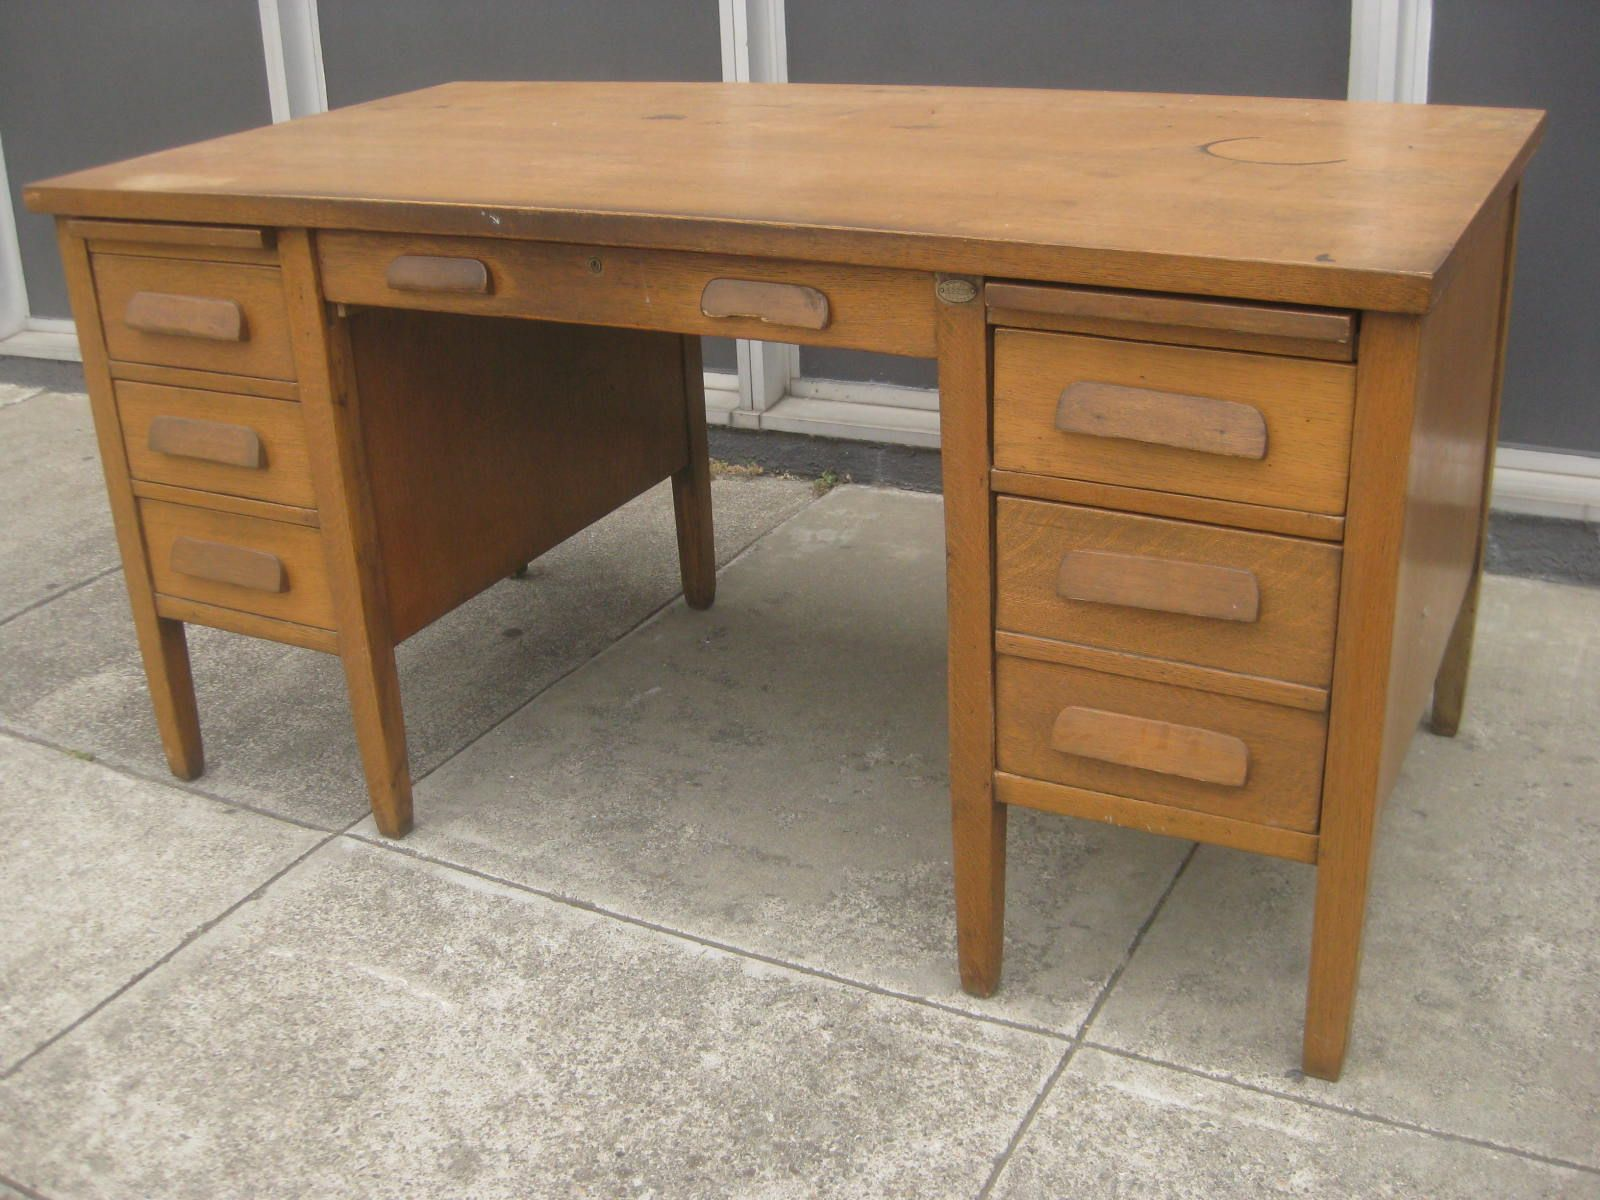 UHURU FURNITURE & COLLECTIBLES: SOLD - Oak Teacher's Desk - $75